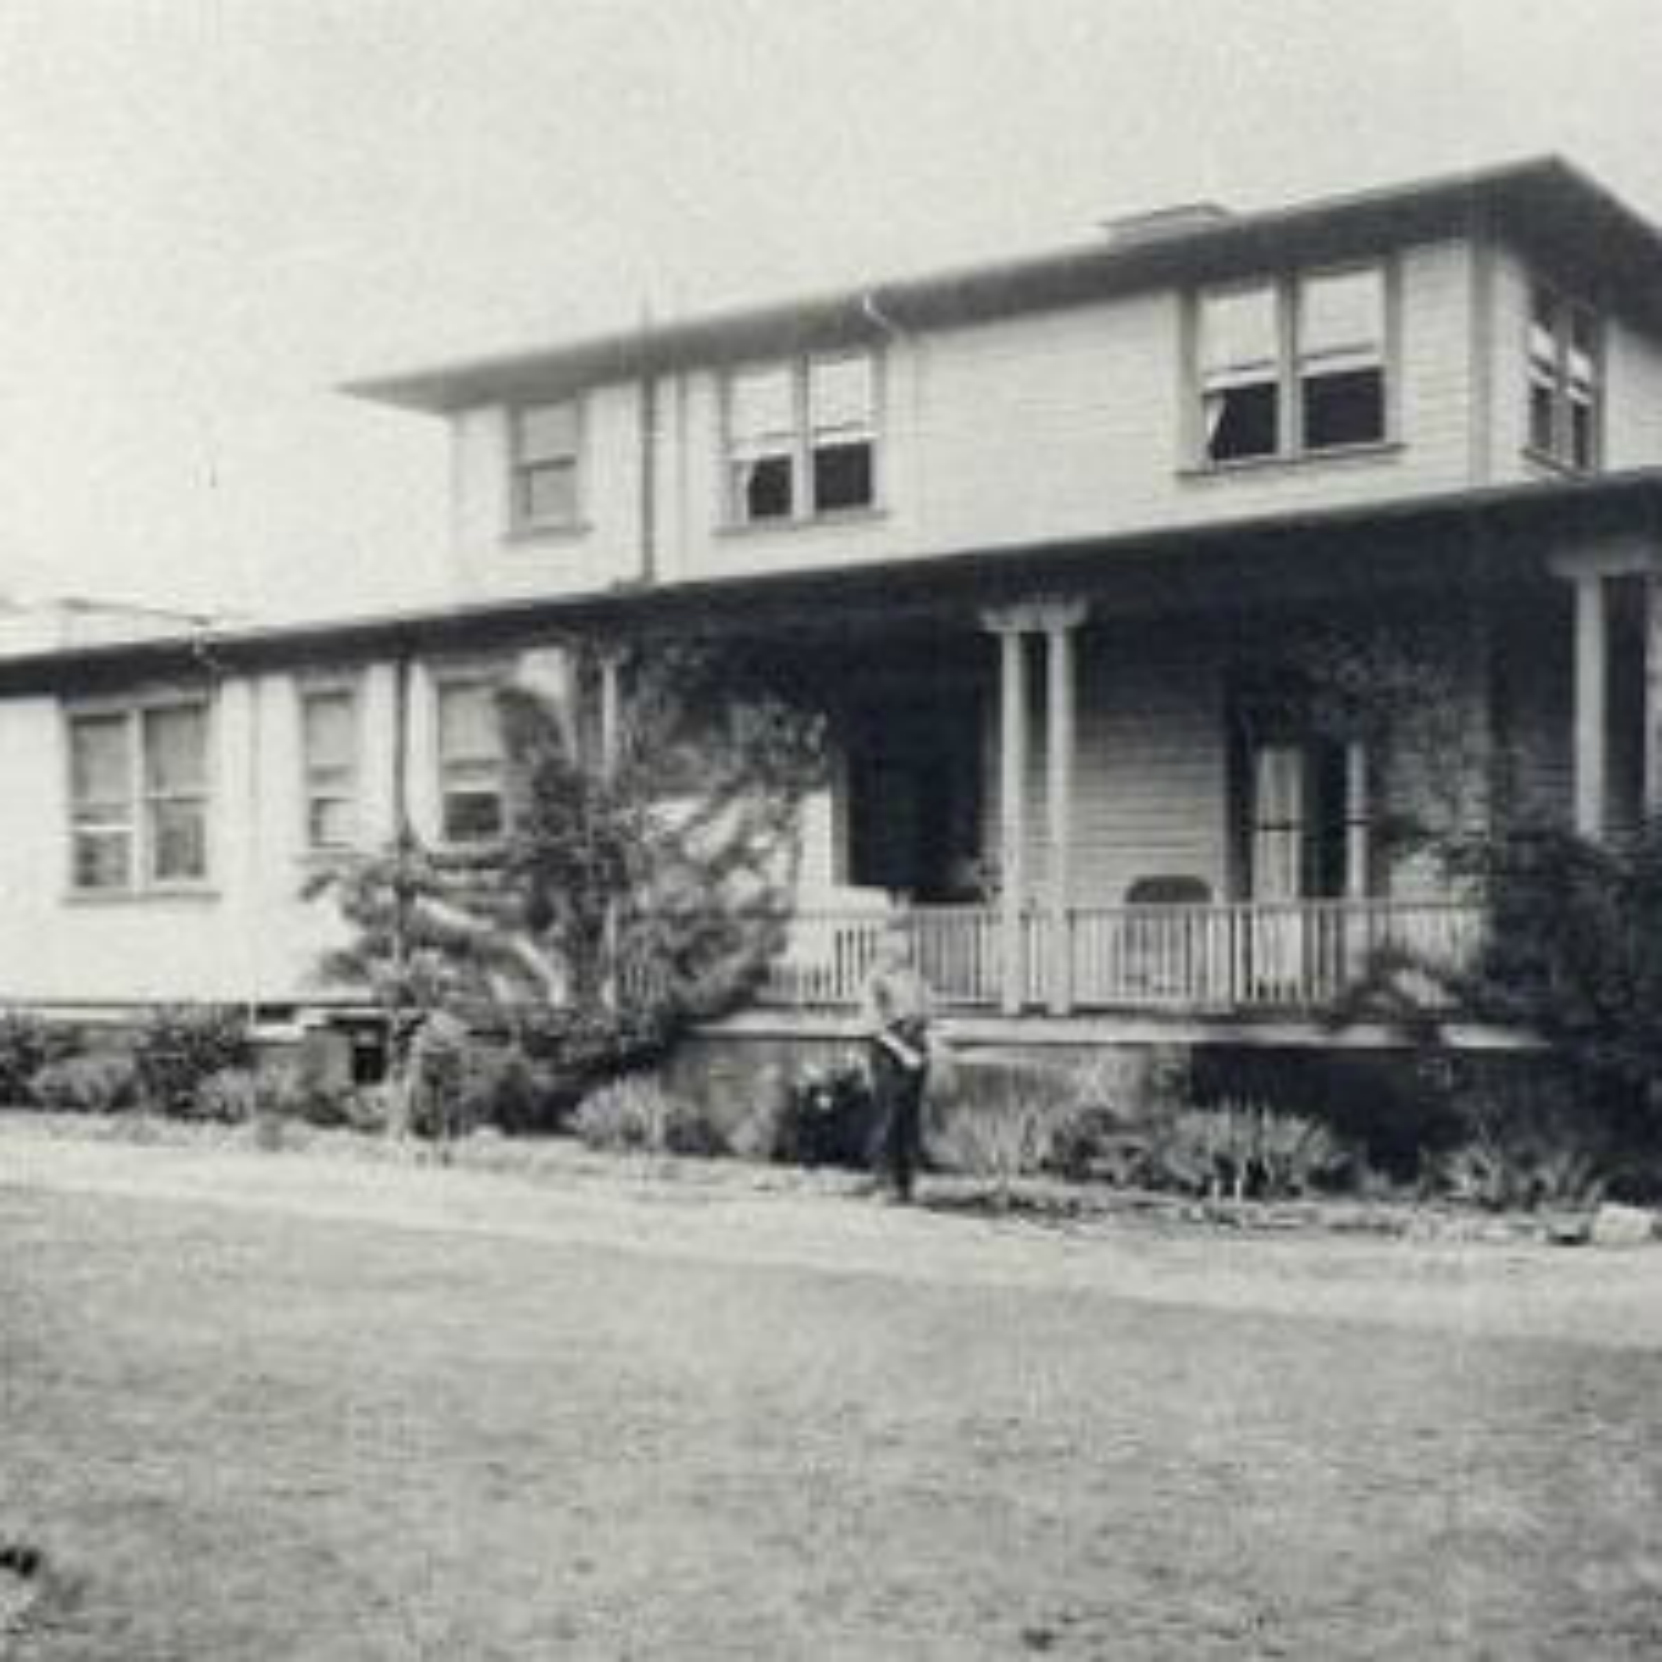 King's Daughters' Hospital, Duncan, B.C., circa 1930. This building has since been demolished and replaced by the Cairnsmore long term care facility.